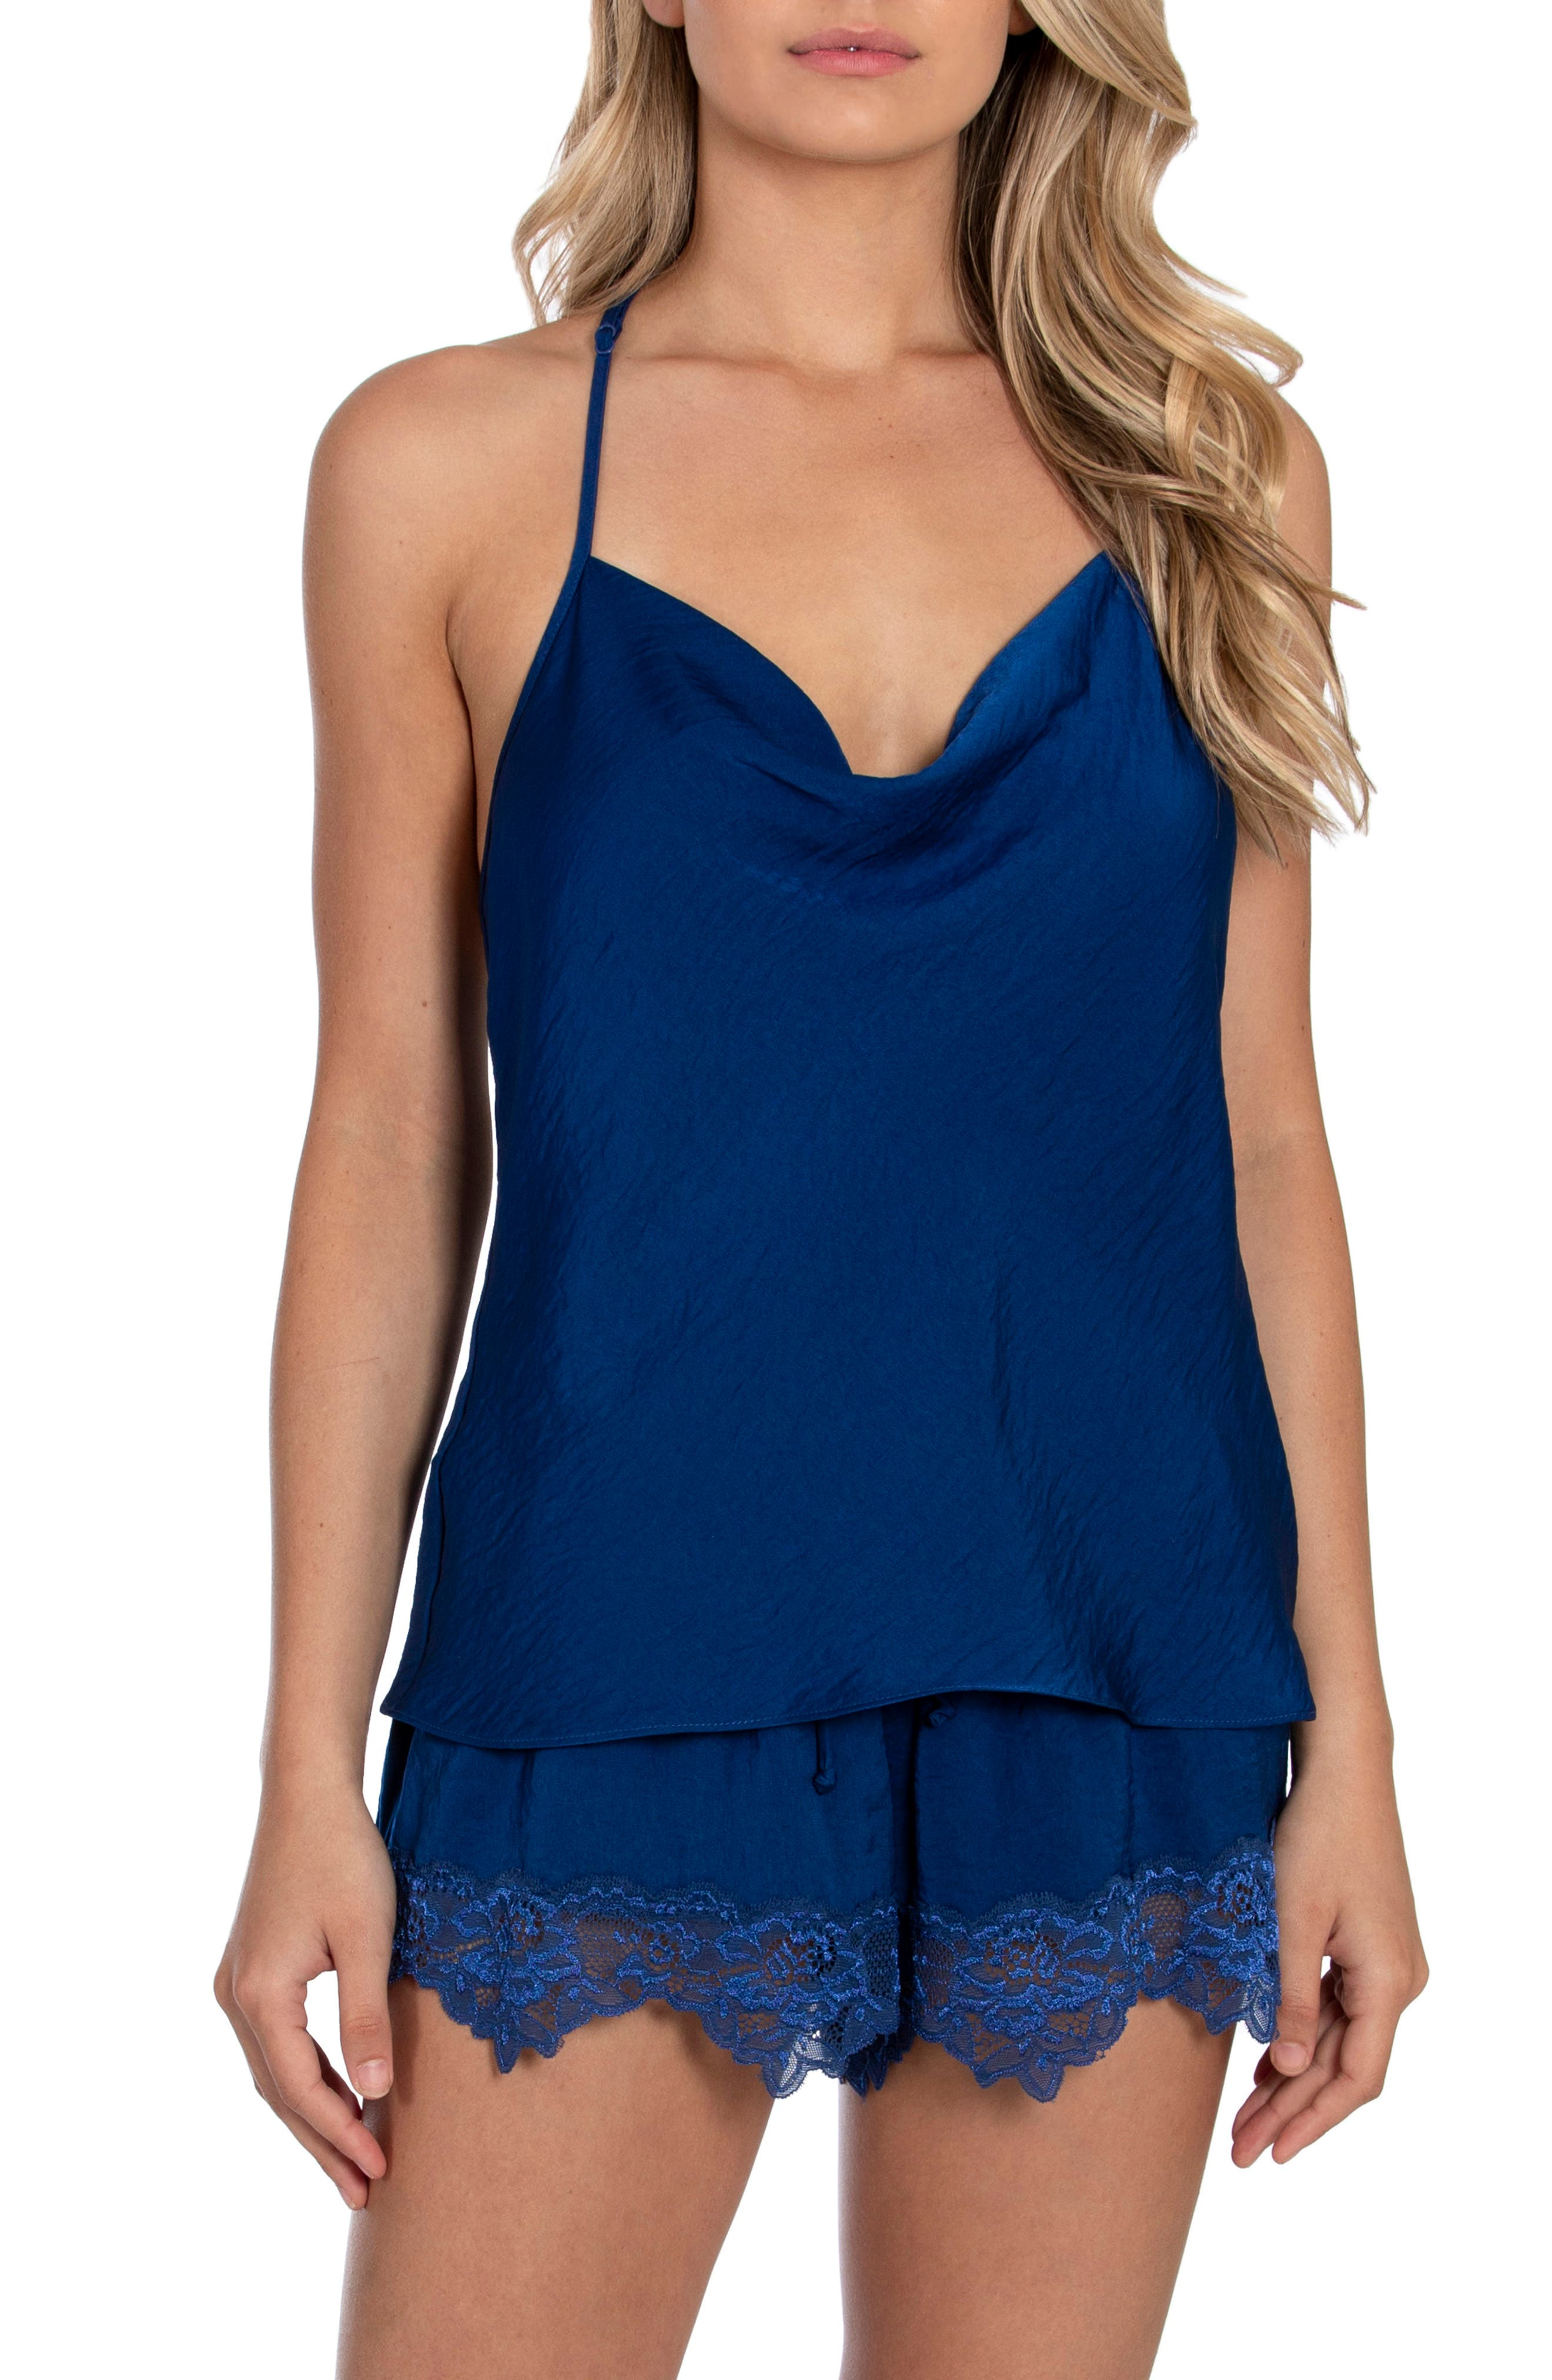 Image of In Bloom by Jonquil A Taste of Honey Camisole & Shorts 2-Piece Pajama Set